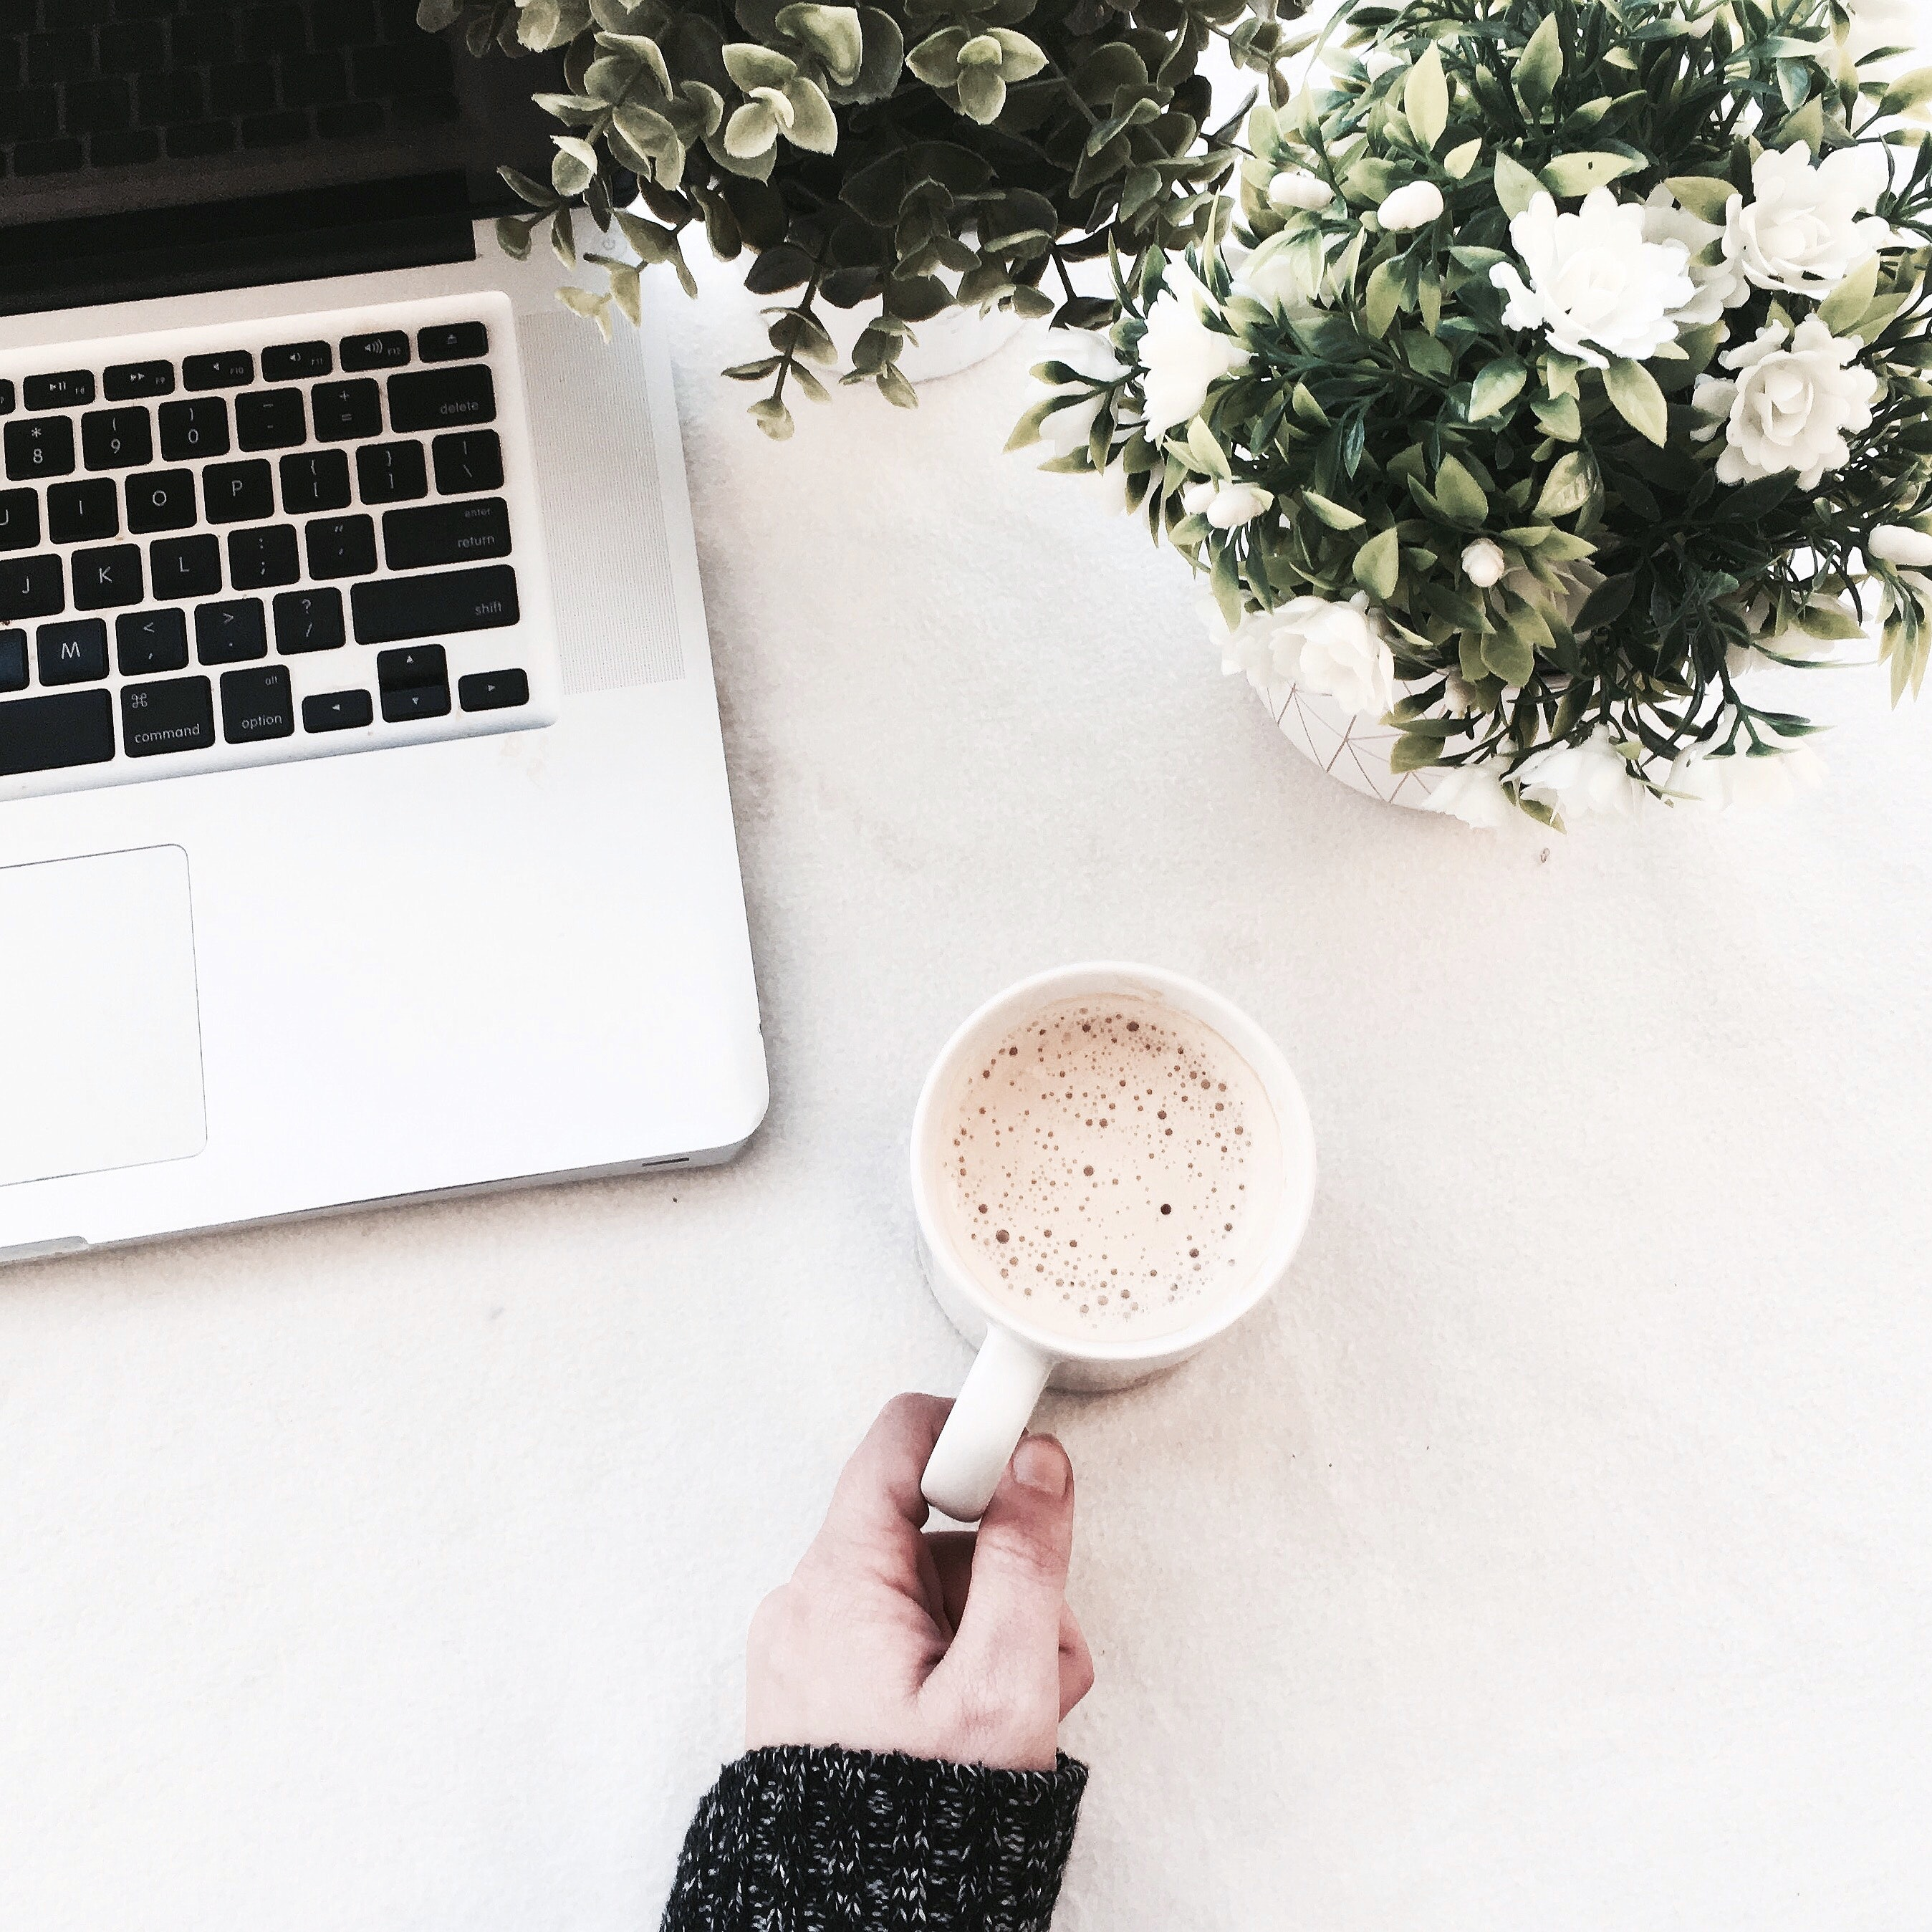 Person Holding Cup of Coffee, Beverage, Flowers, Woman, Table, HQ Photo